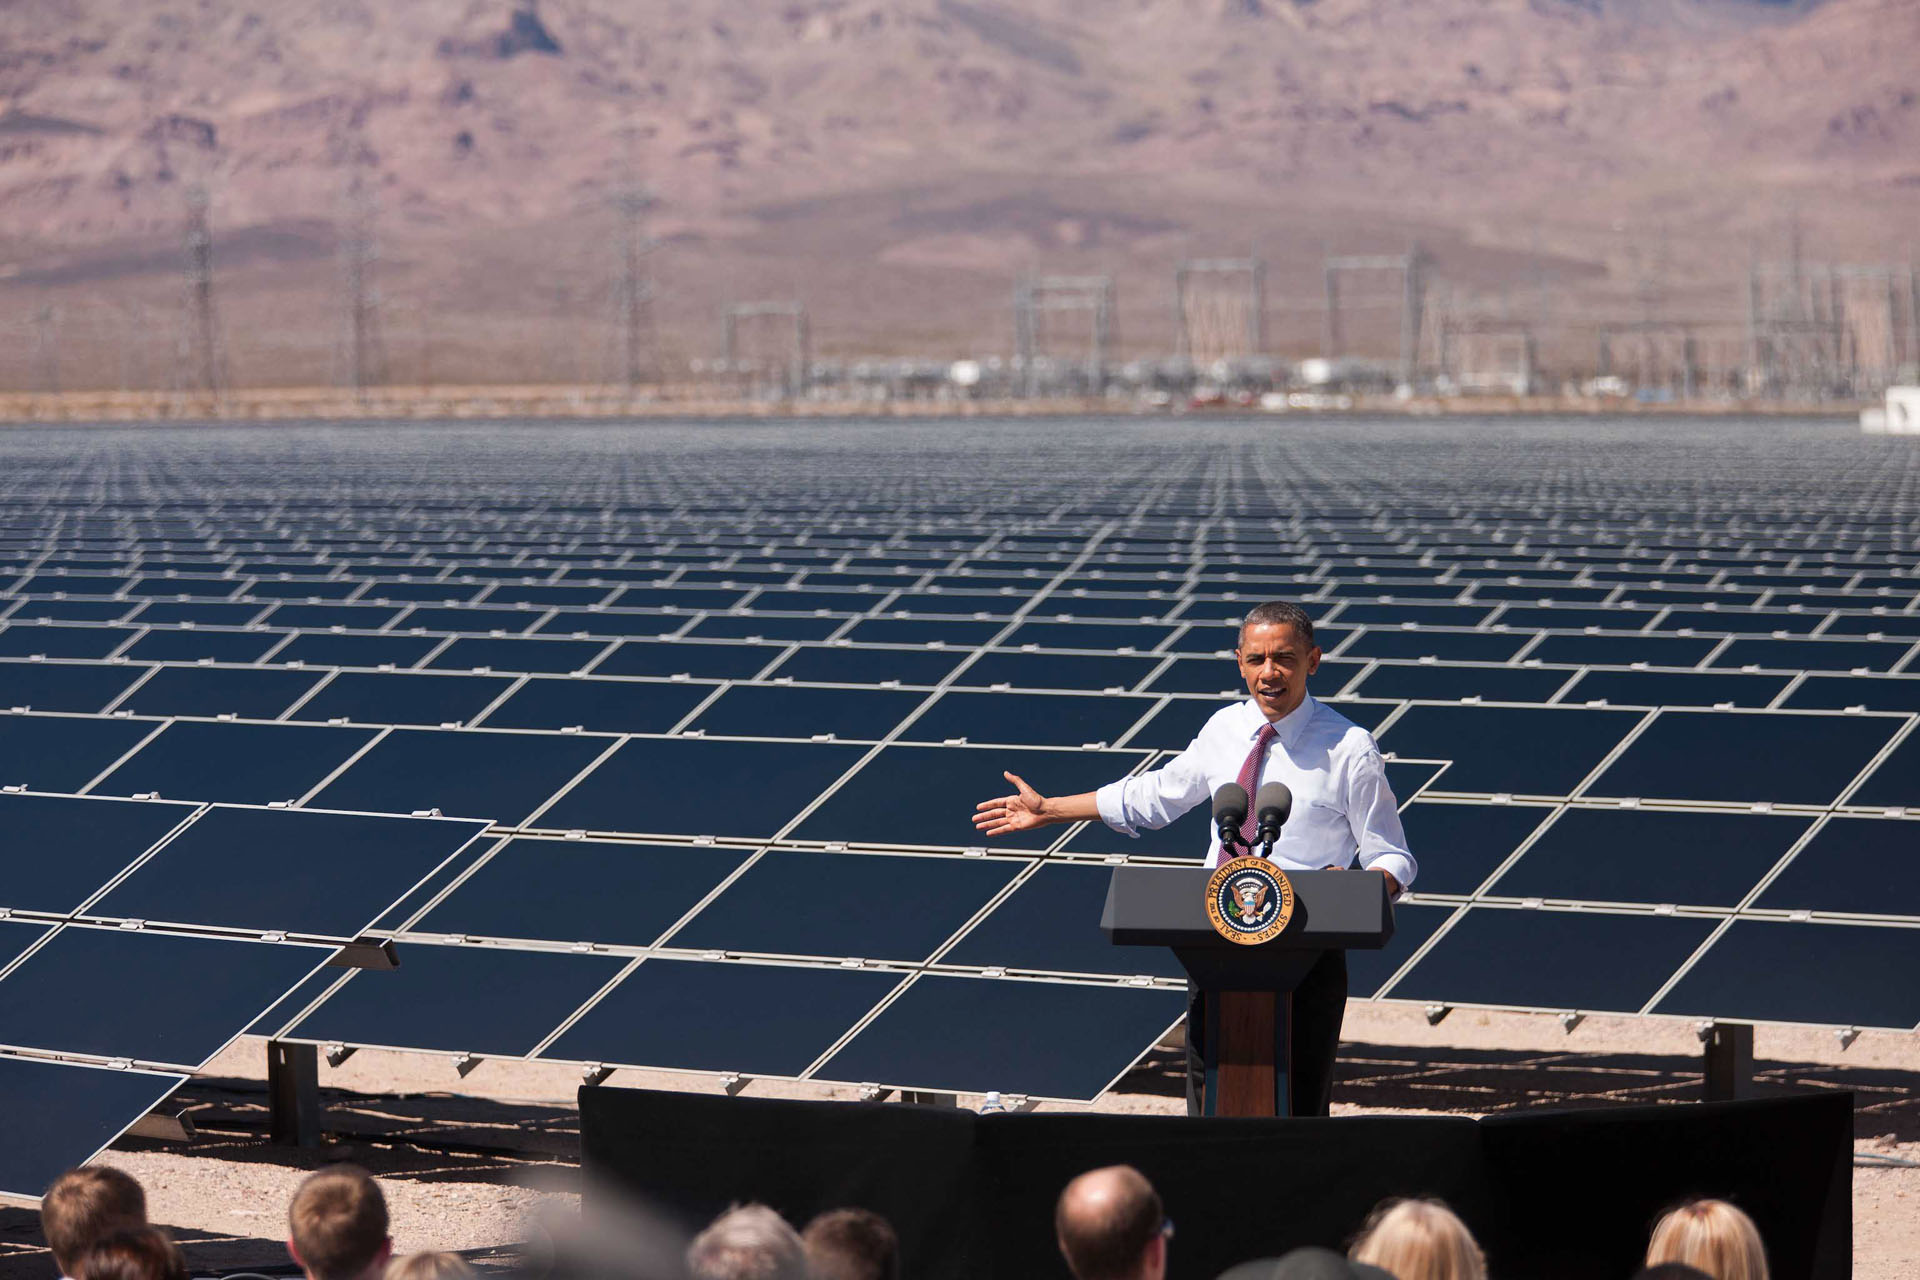 President Obama Delivers Remarks on Energy at the Copper Mountain Solar 1 Facility